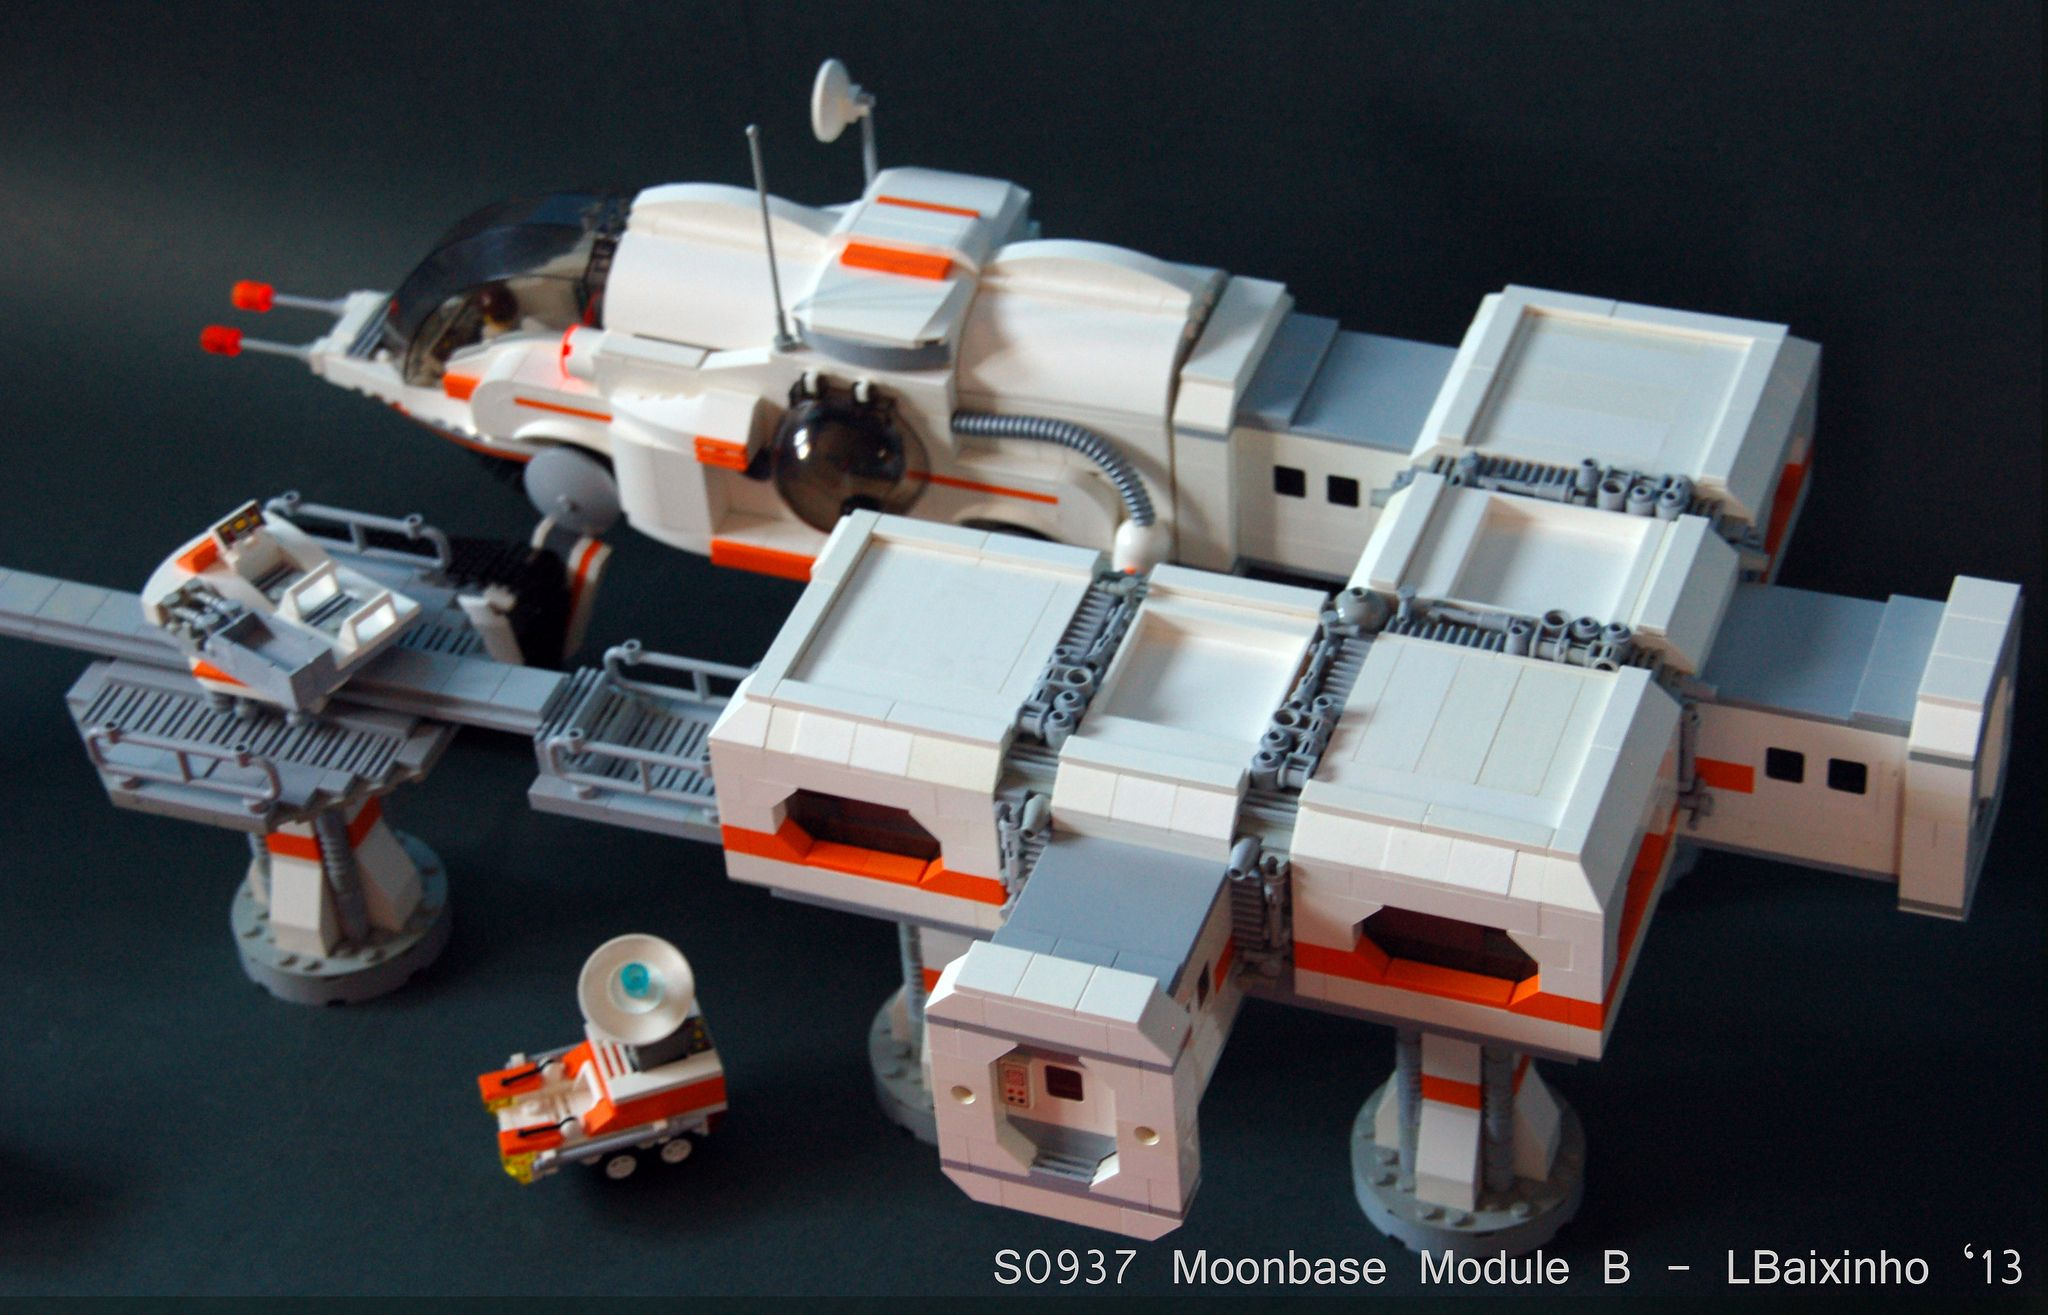 https://flic.kr/p/eT39HL | S0937 Moonbase Module B (4) | Moonbase module that I made for my LUG space display.